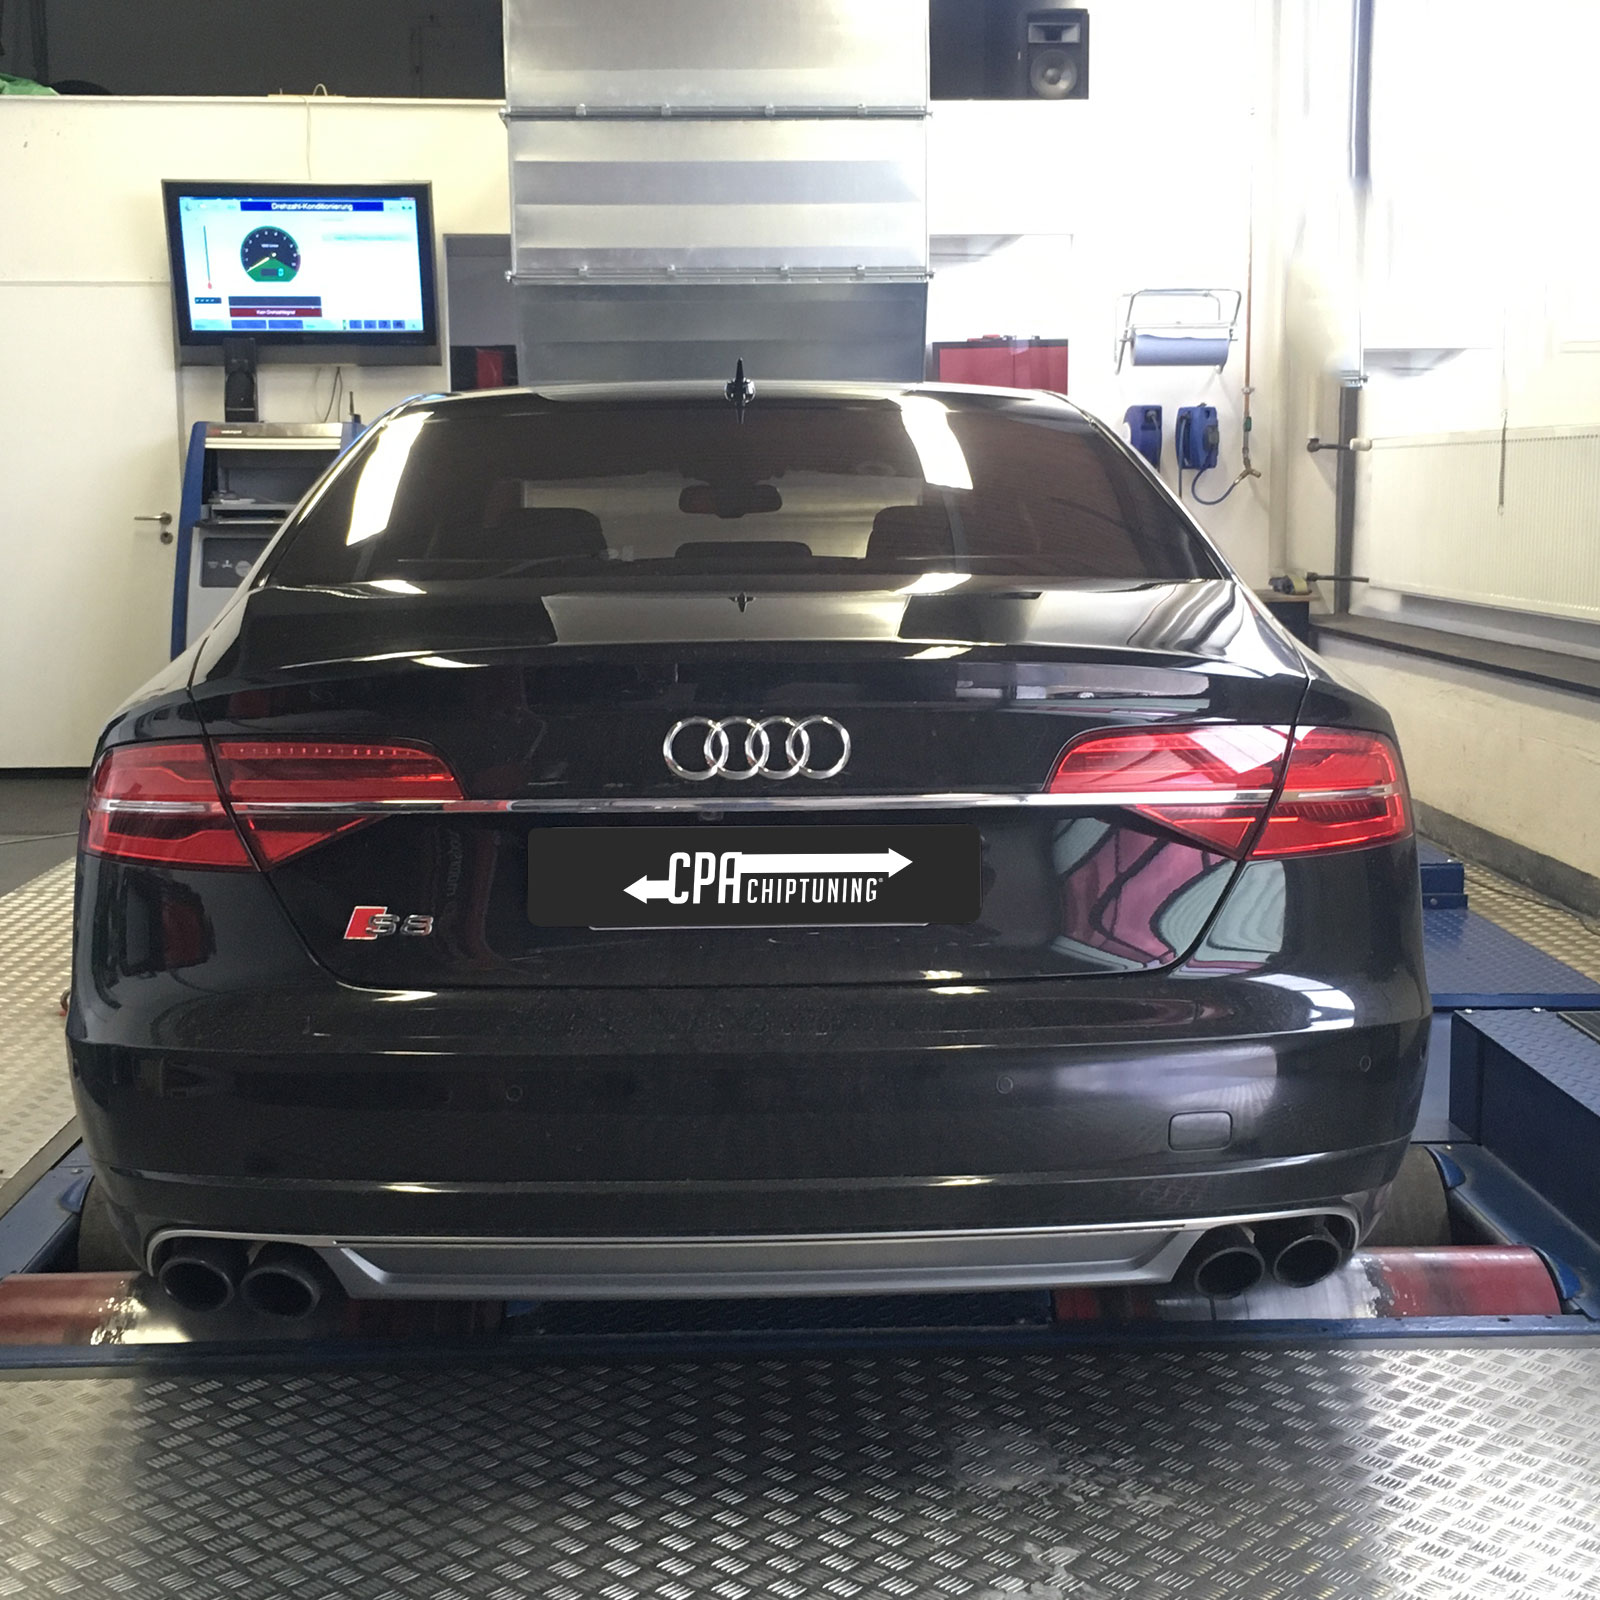 Luxury liner gets more steam: Audi S8 Plus with CPA PowerBox